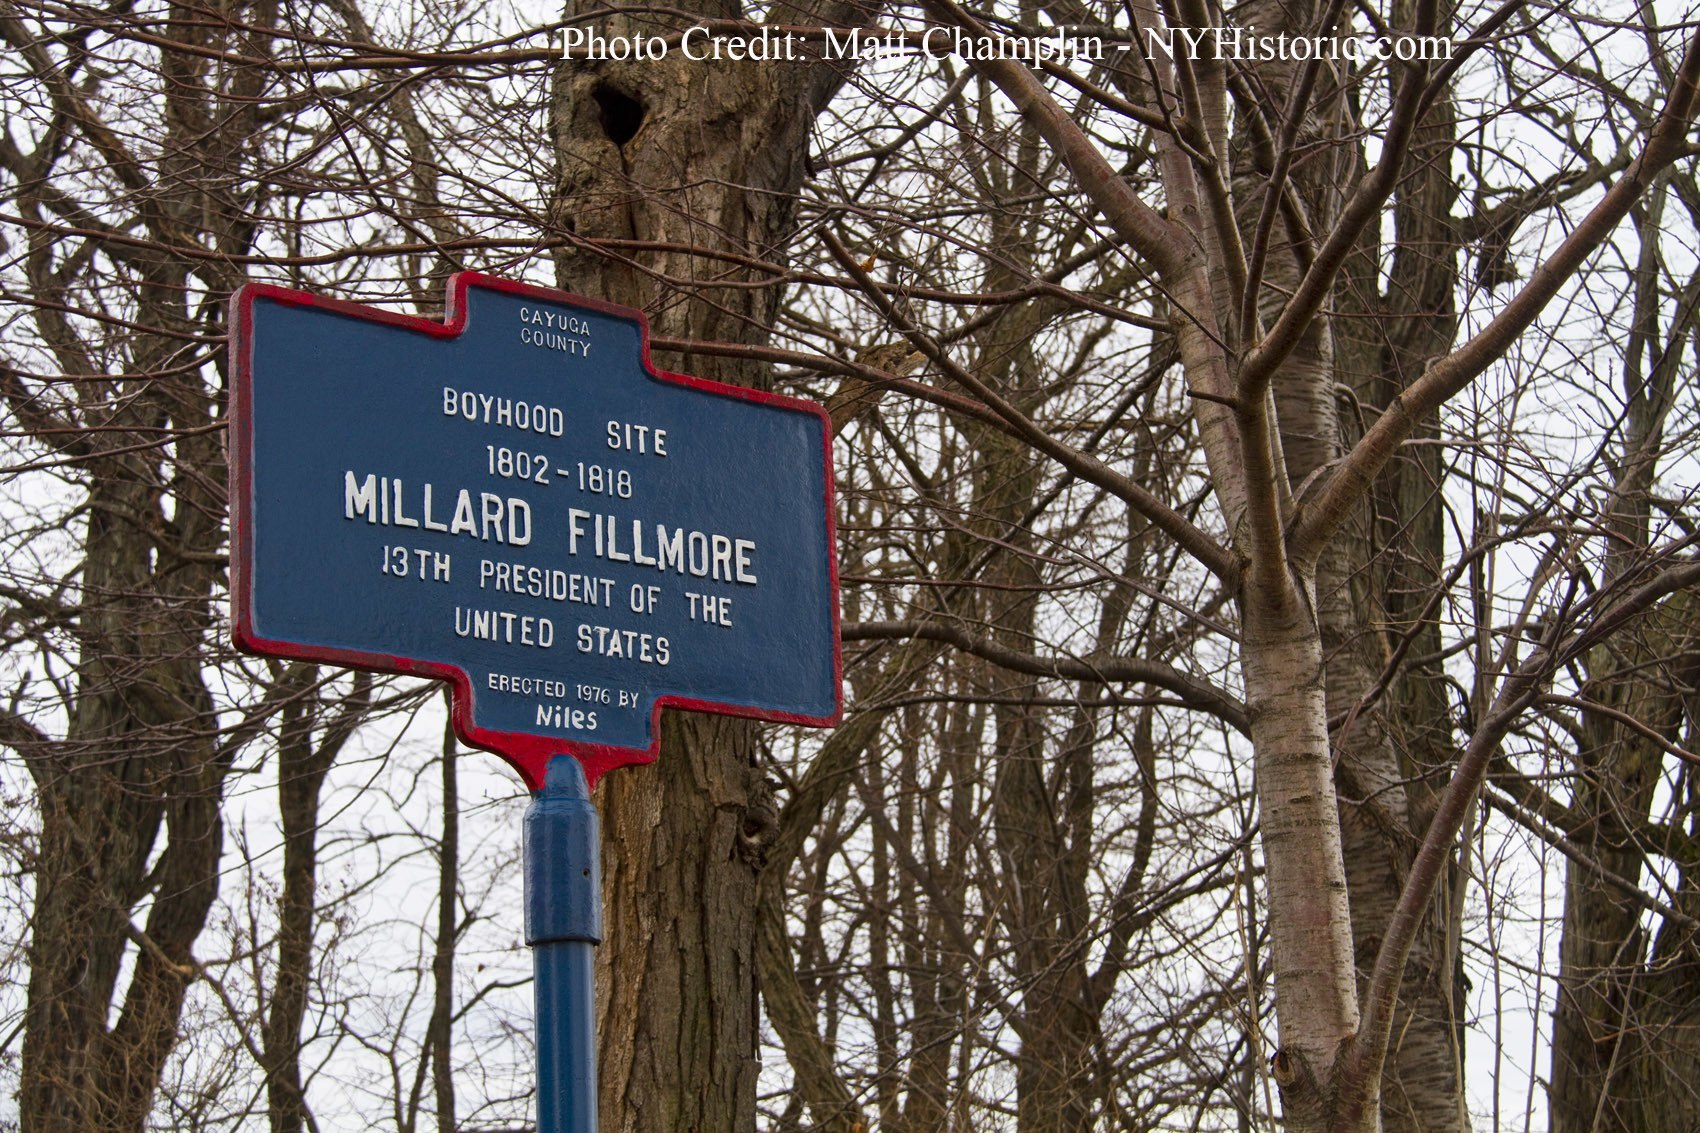 Fillmore Boyhood Home Site (Sign)